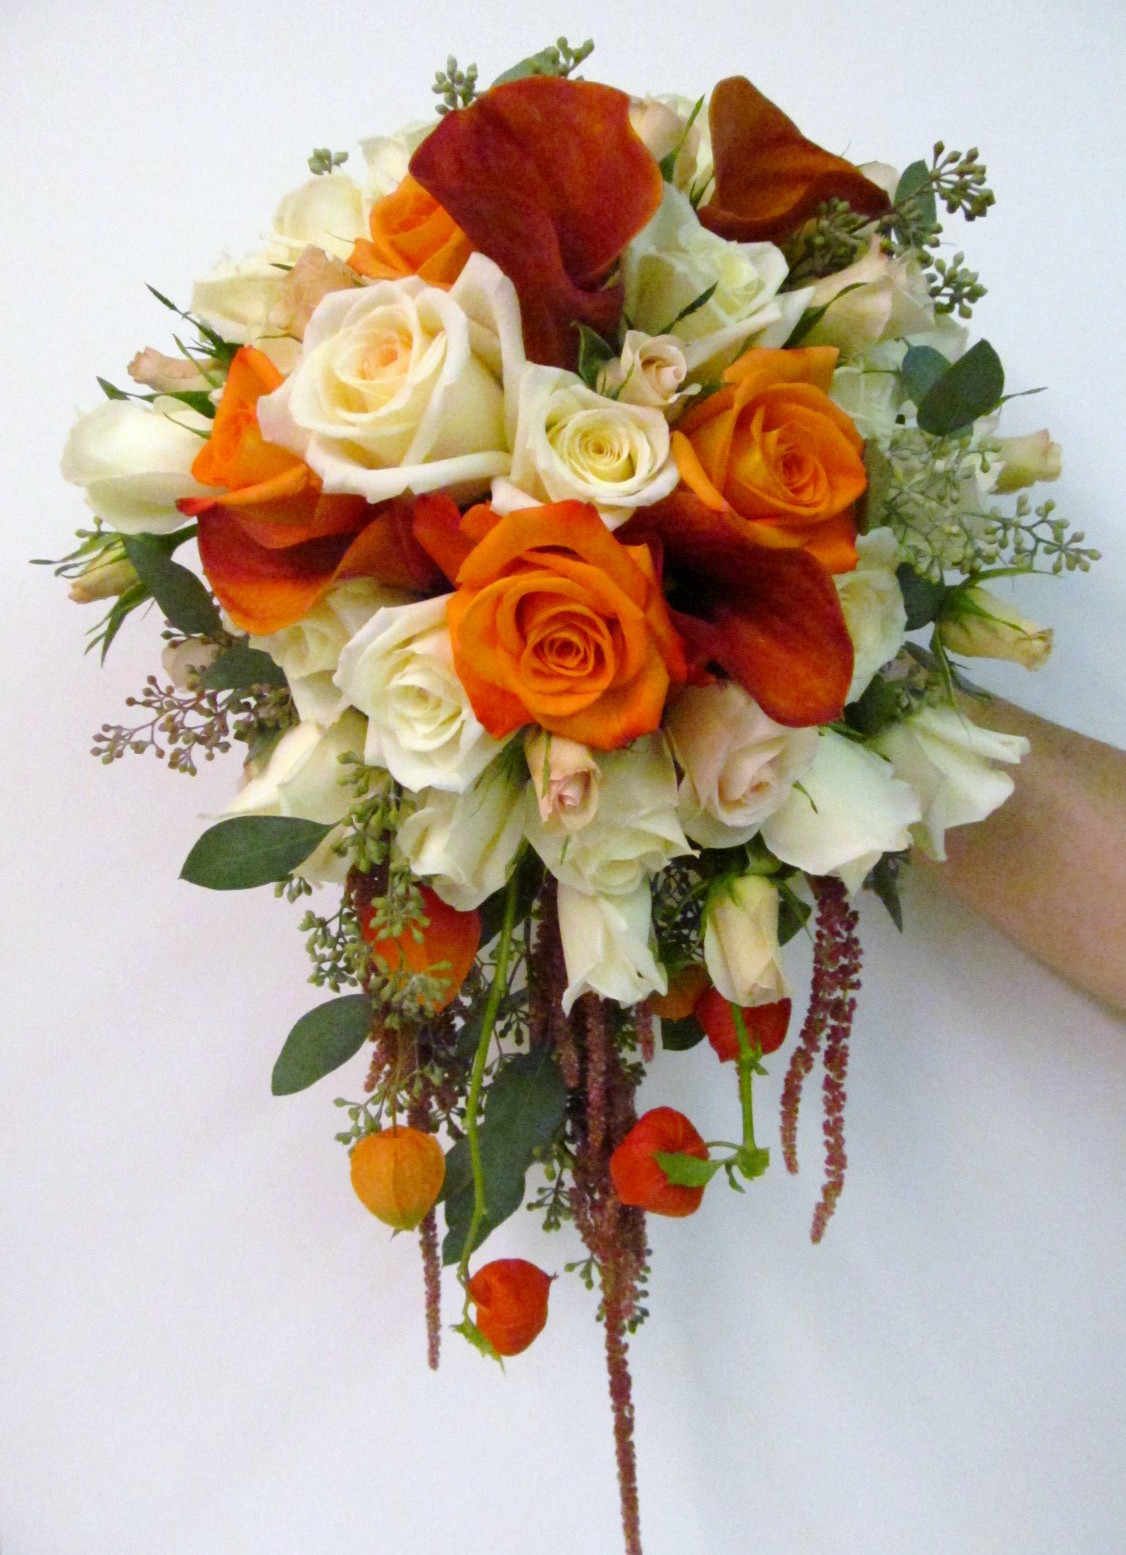 Becker farms gasport ny buffalo wedding event flowers by lipinoga florist - Flowers good luck bridal bouquet ...